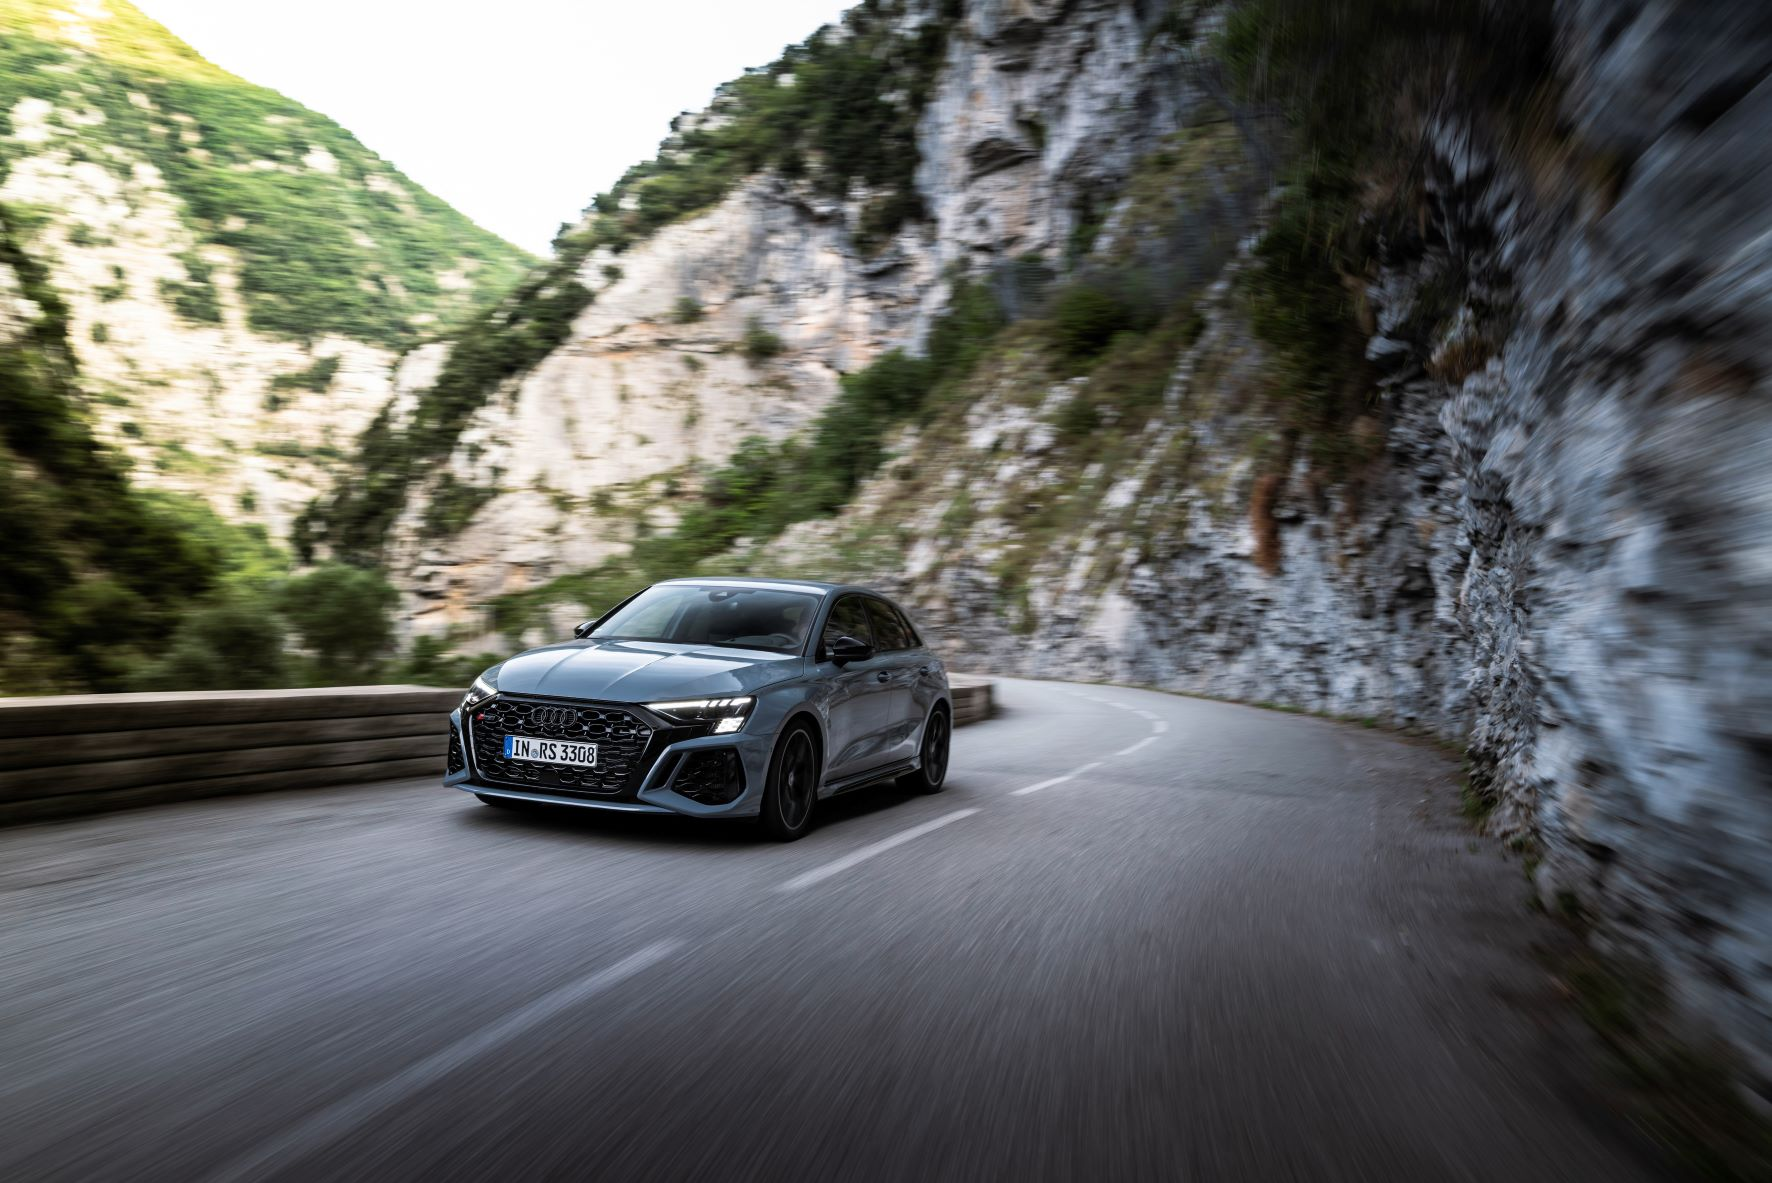 Moving shot of the new Audi RS3 sportback